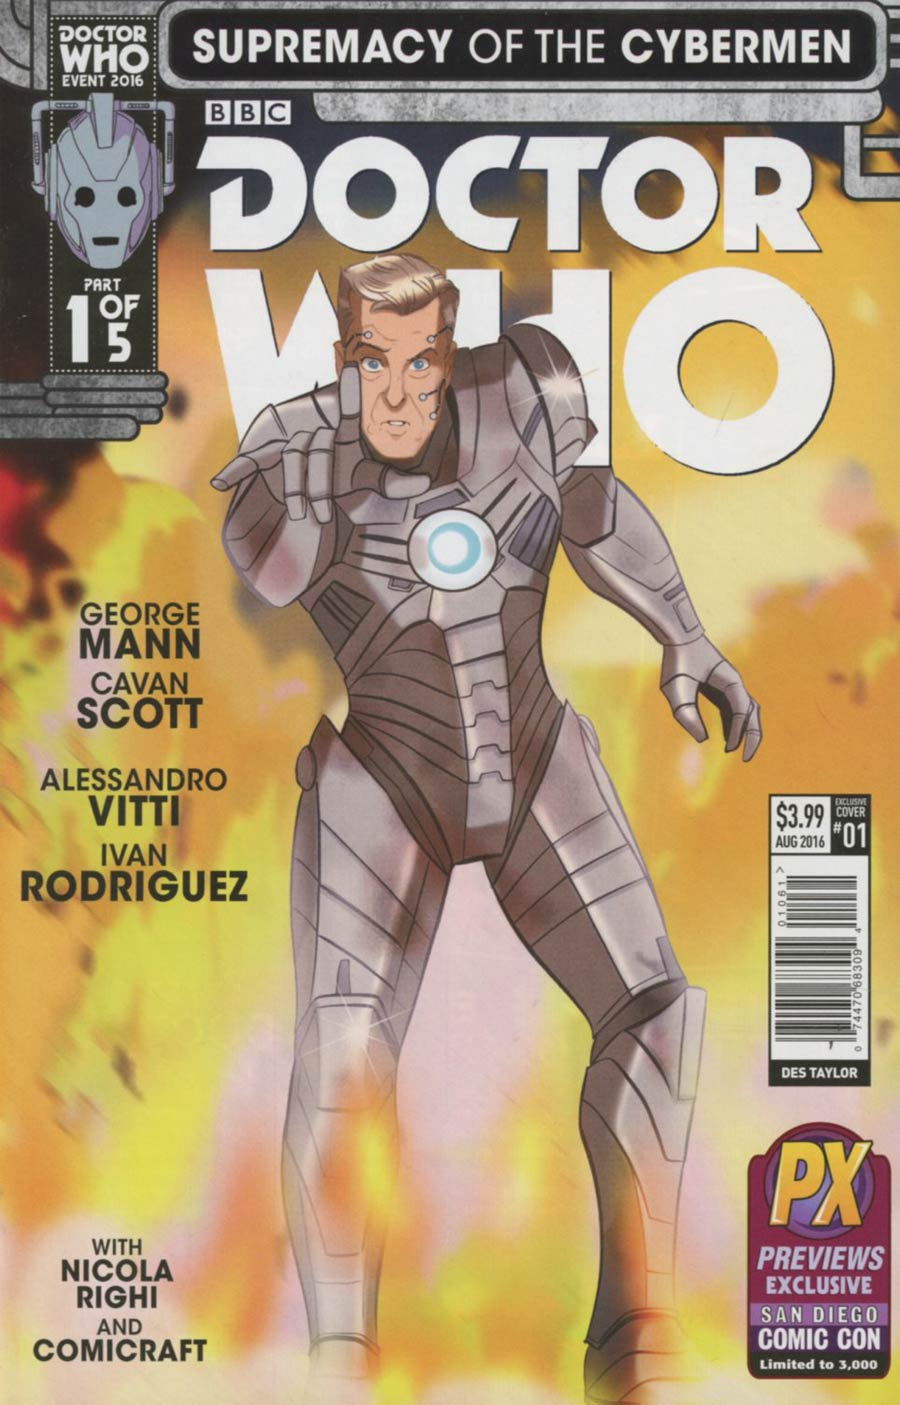 Doctor Who Event 2016 Supremacy Of The Cybermen #1 Cover F SDCC 2016 Exclusive Variant Cover